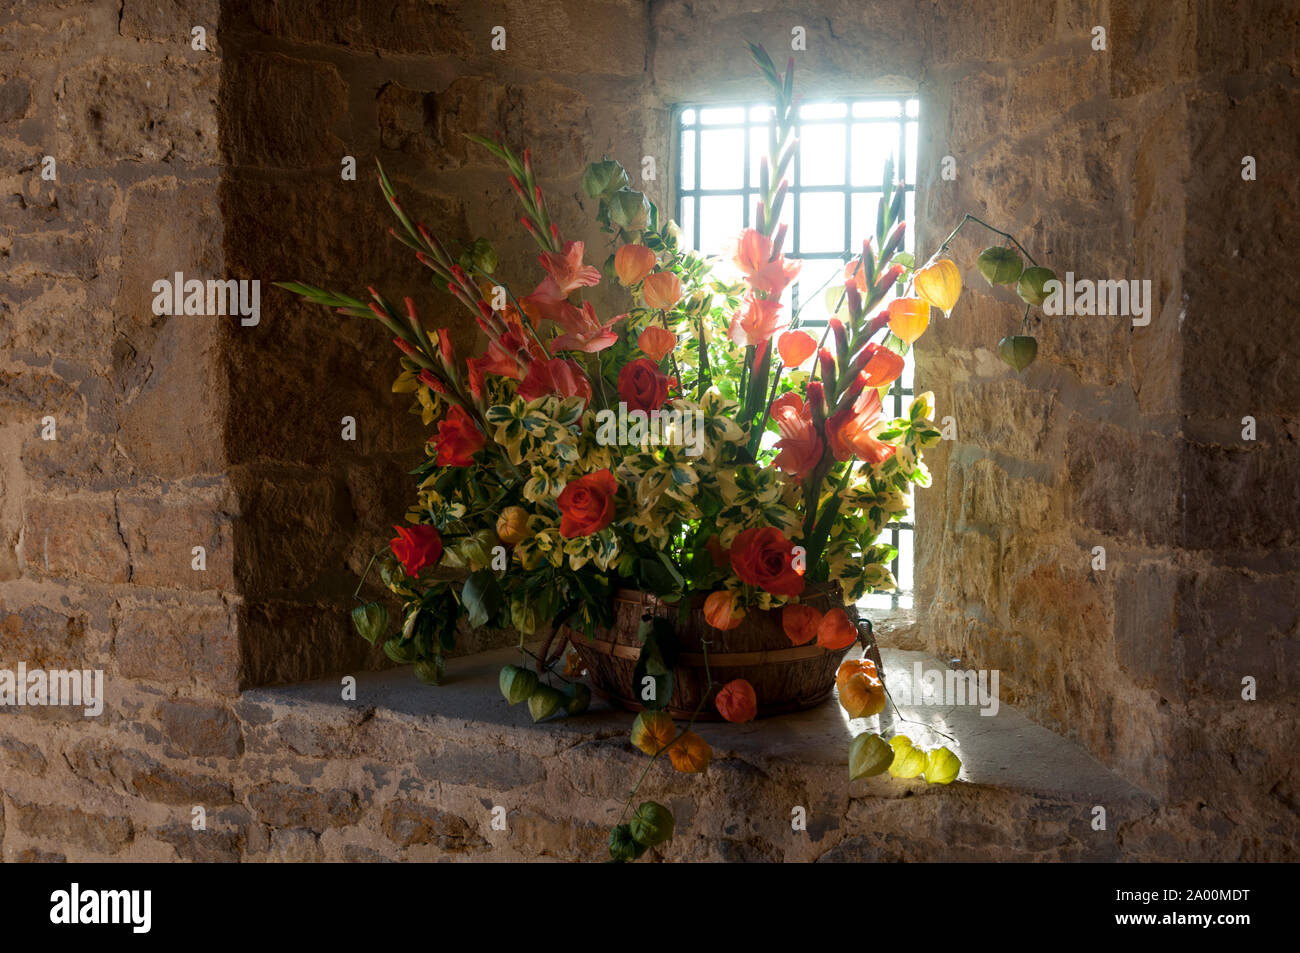 Flower Arrangements For Churches High Resolution Stock Photography And Images Alamy